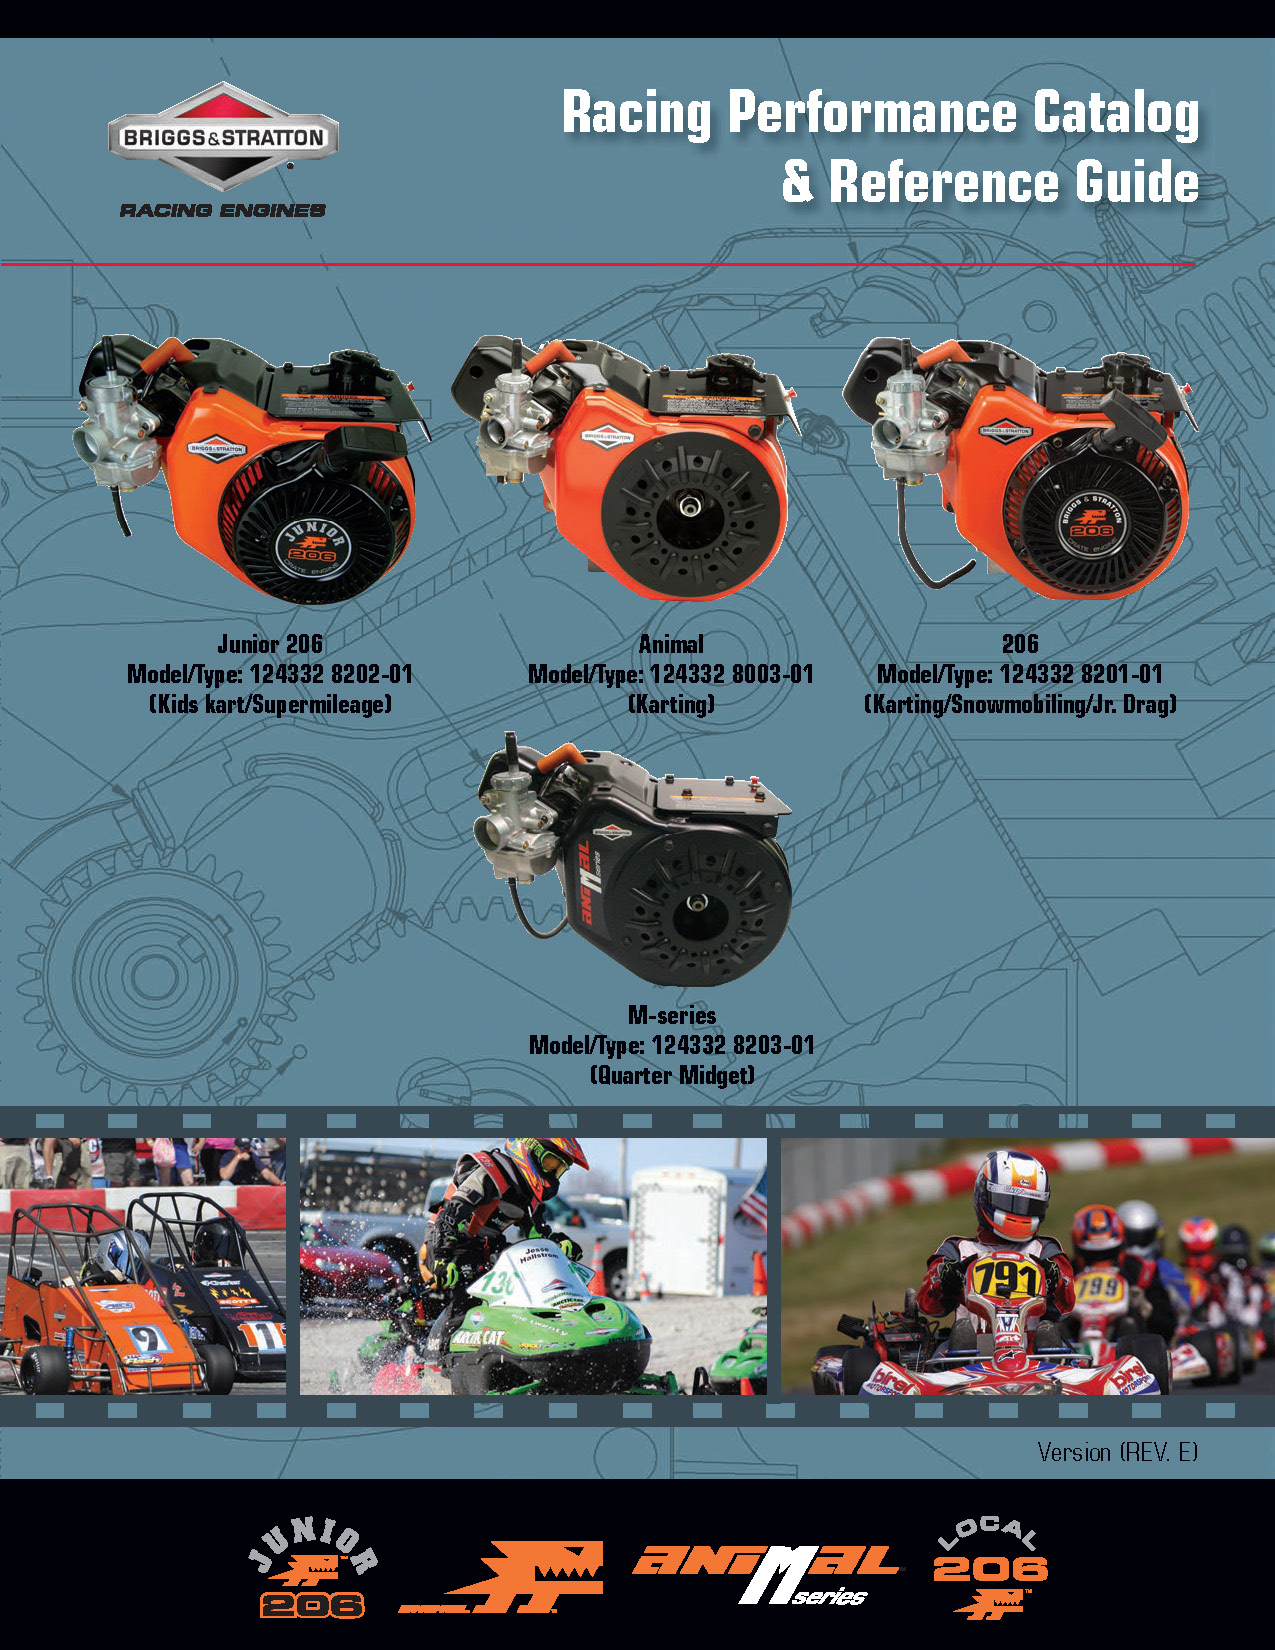 Briggs And Stratton Lawn Mower Parts Diagram Car Tuning